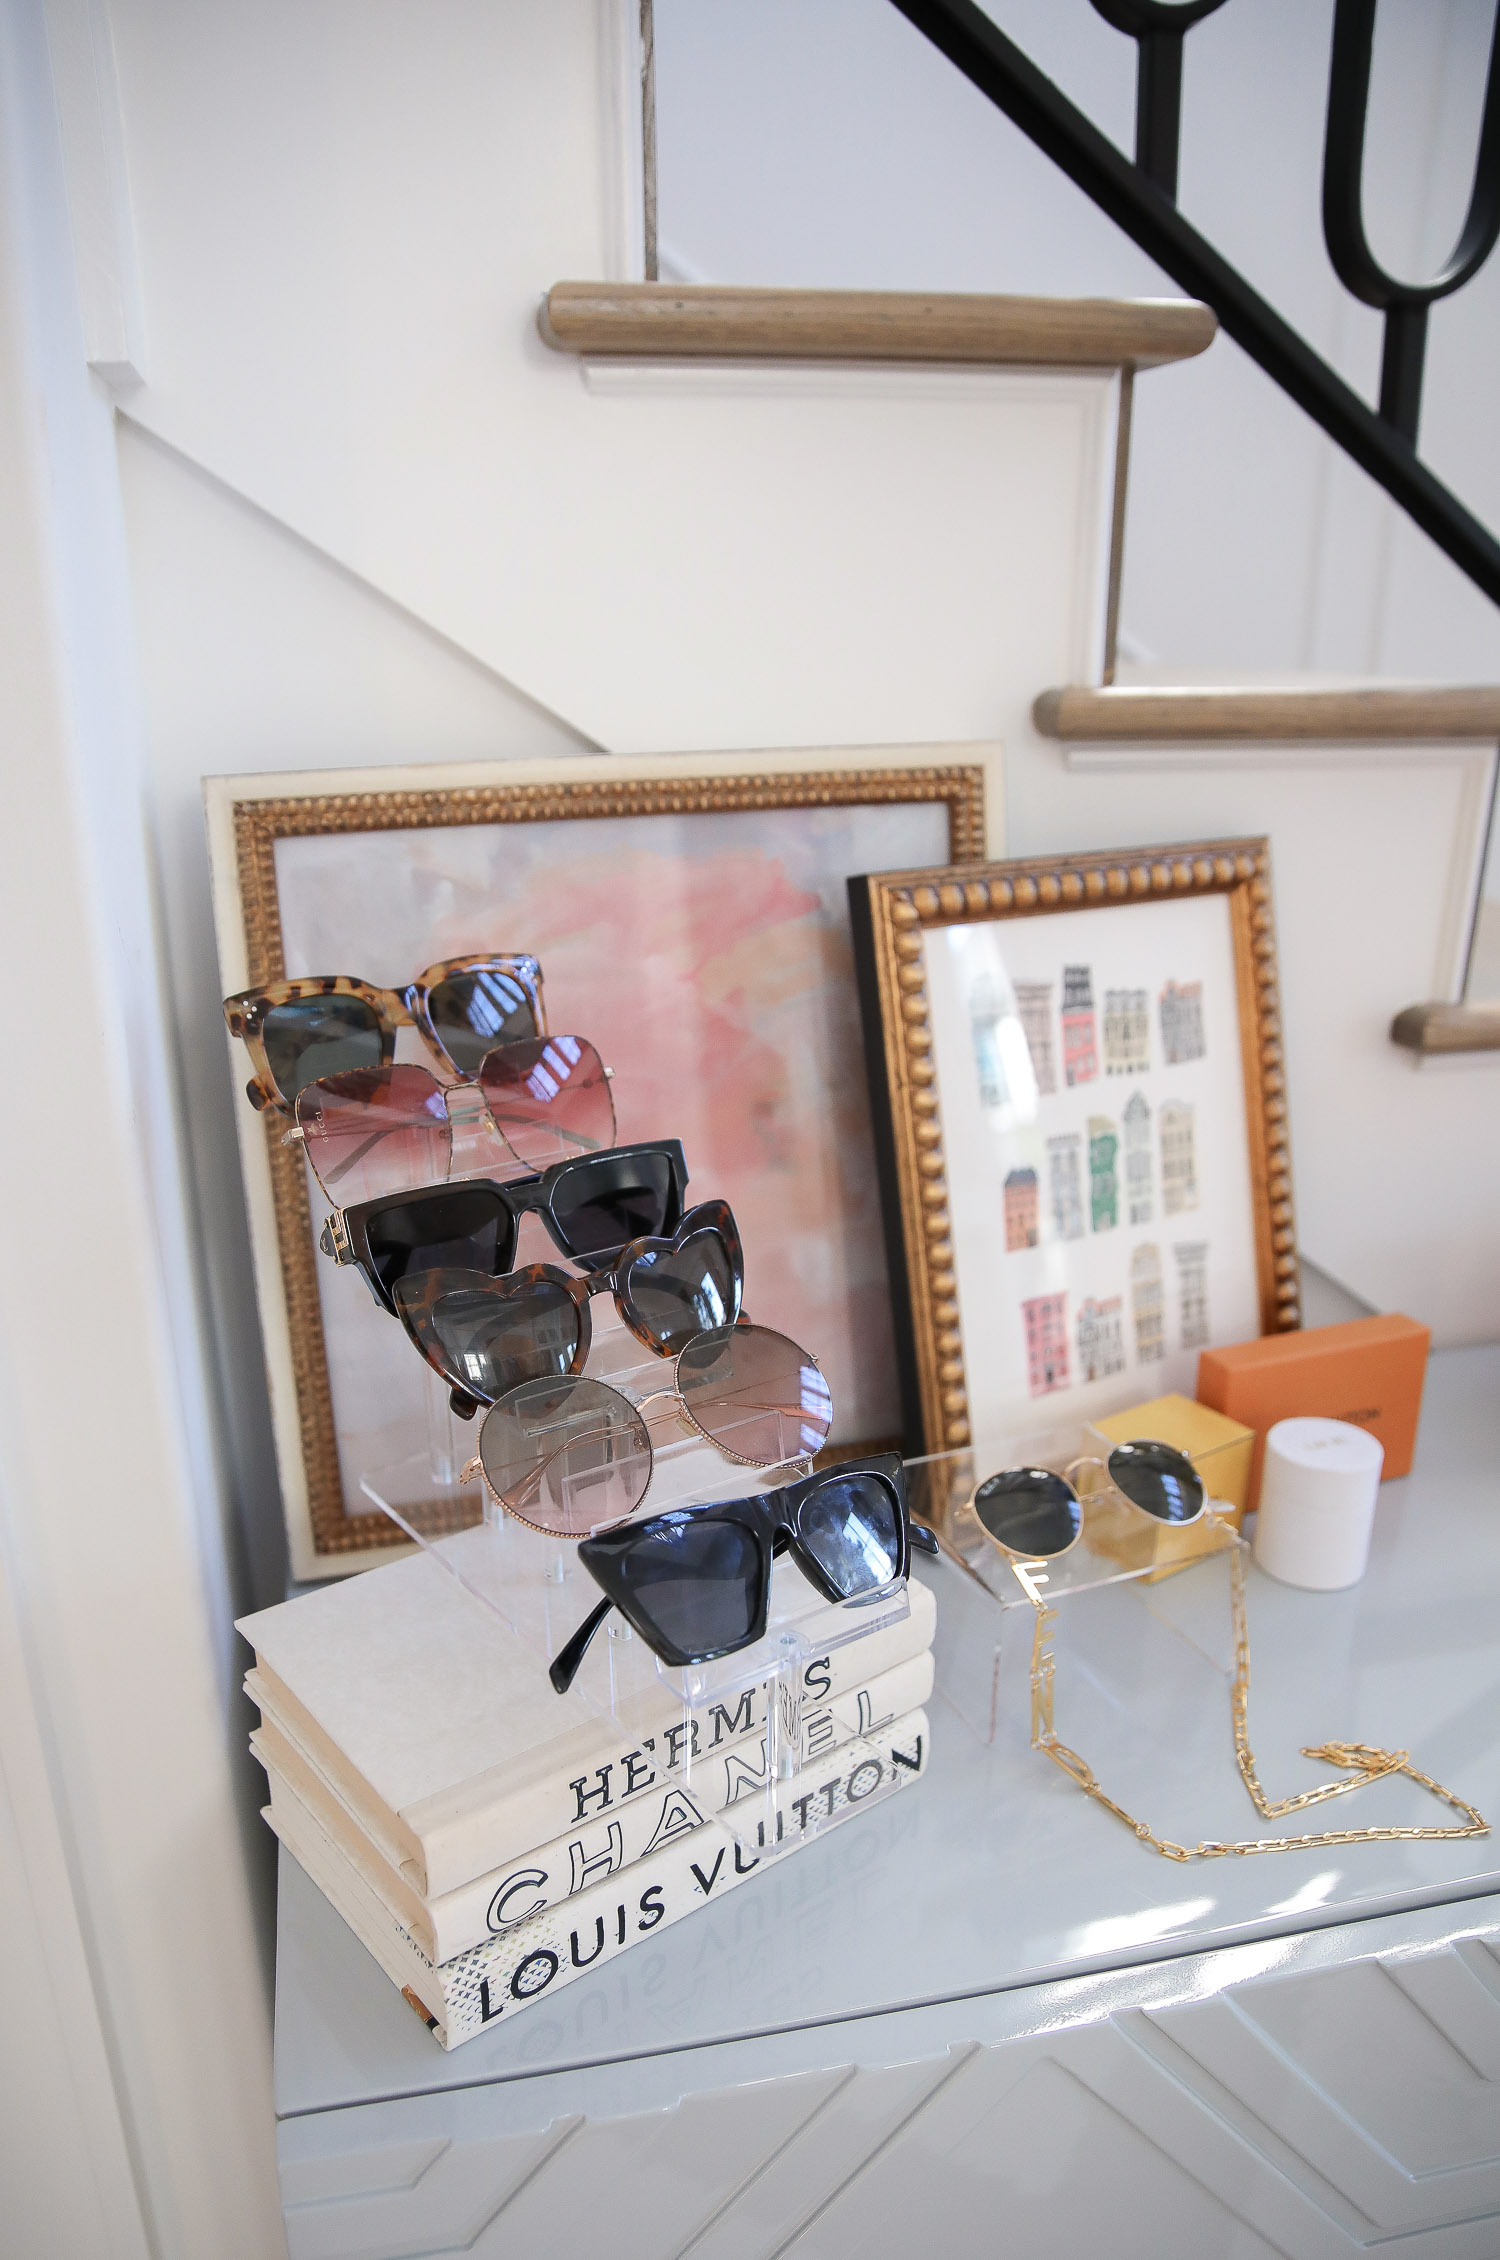 Top Picks by popular US life and style blog, The Sweetest Thing: image of designer sunglasses on acrylic sunglasses stands.